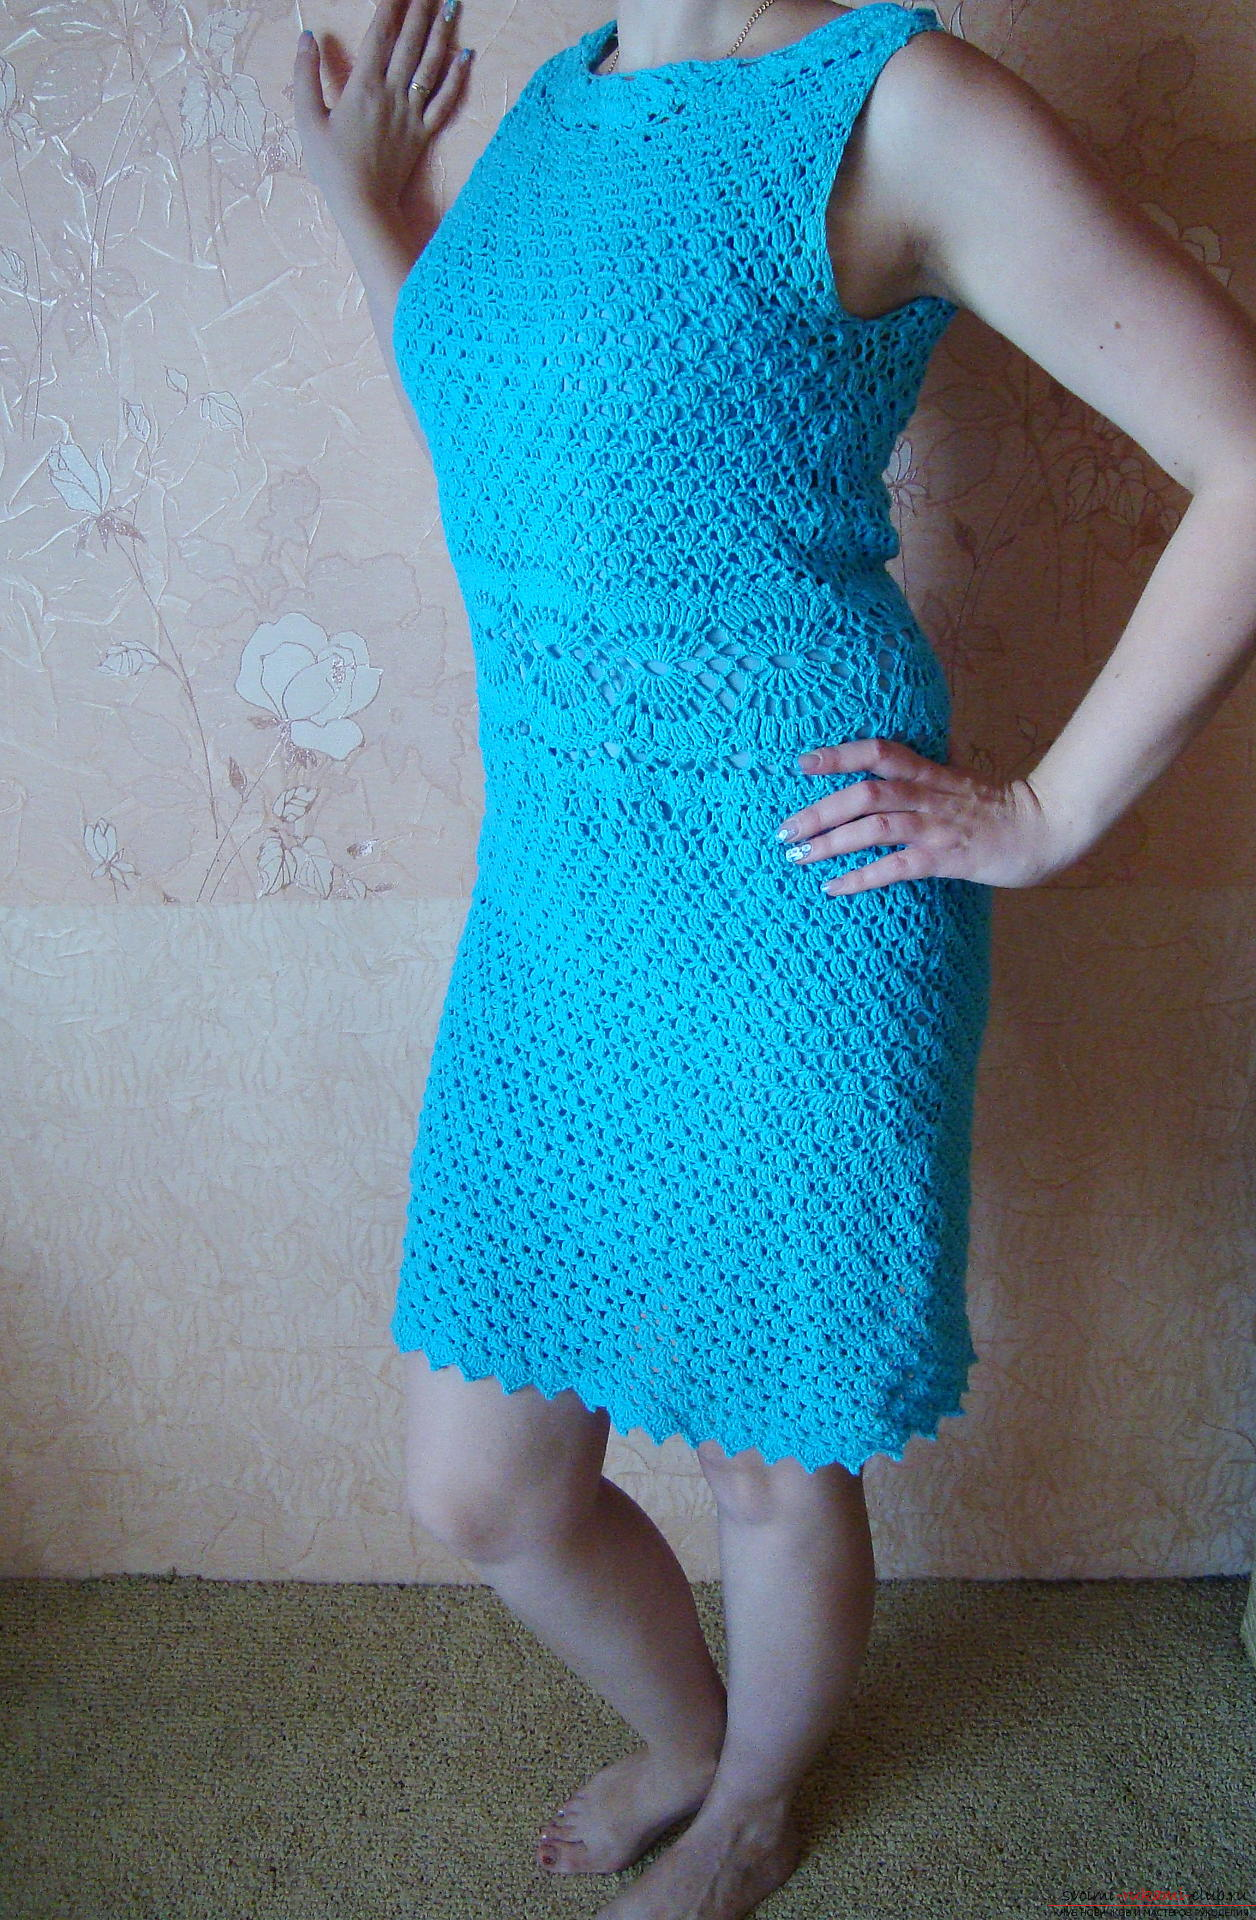 Step-by-step instruction on the binding of a turquoise dress with a crochet. Photo # 2